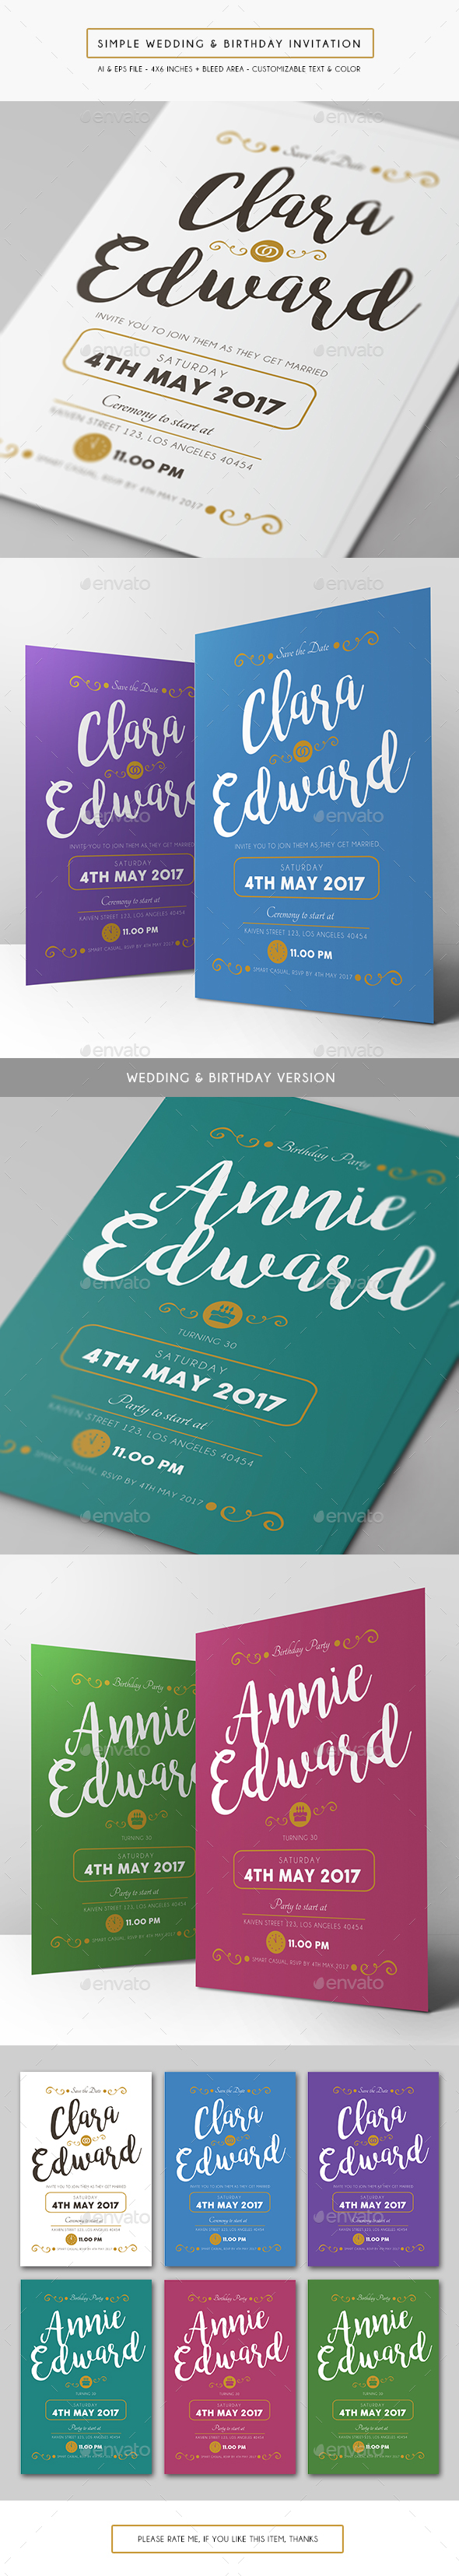 Simple Wedding & Birthday Invitation